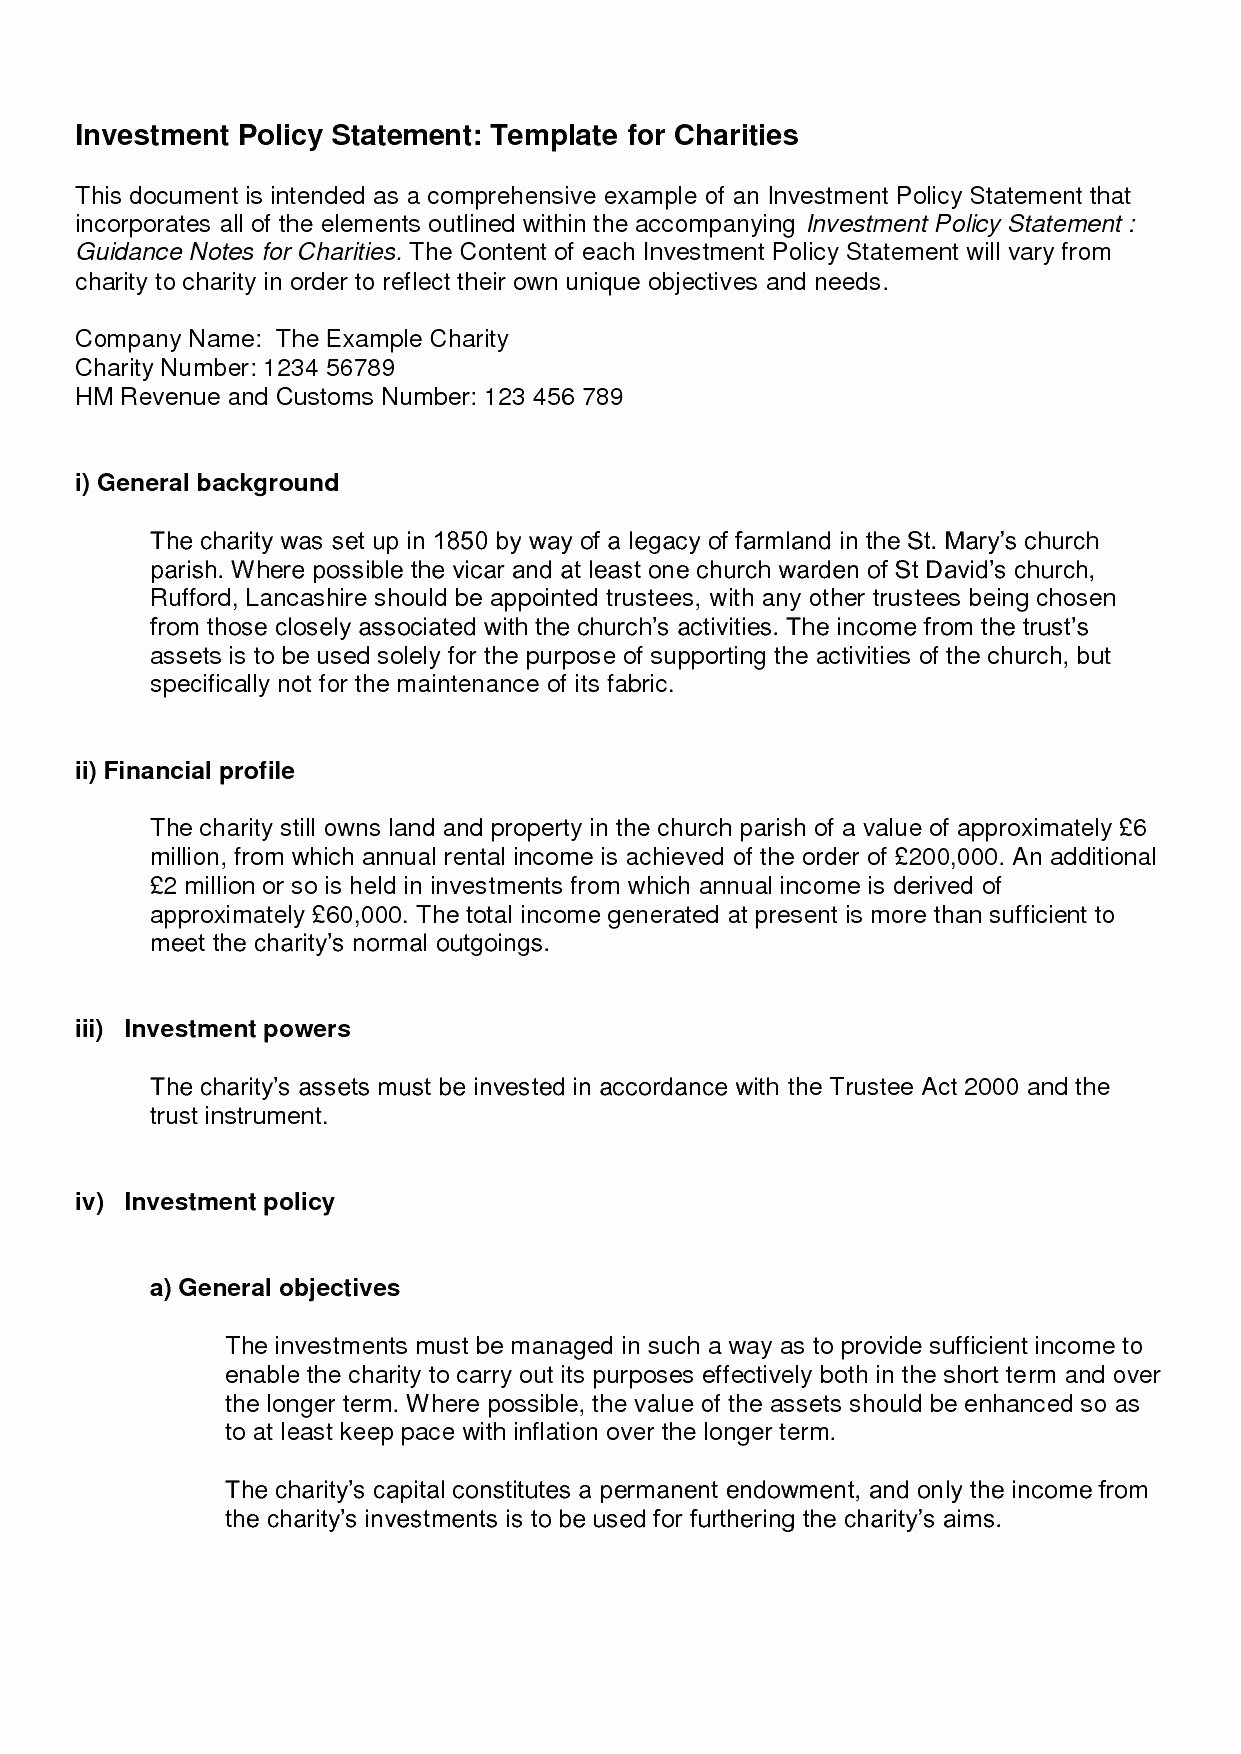 Investment Policy Statement Template Elegant Investment Policy Statement Template